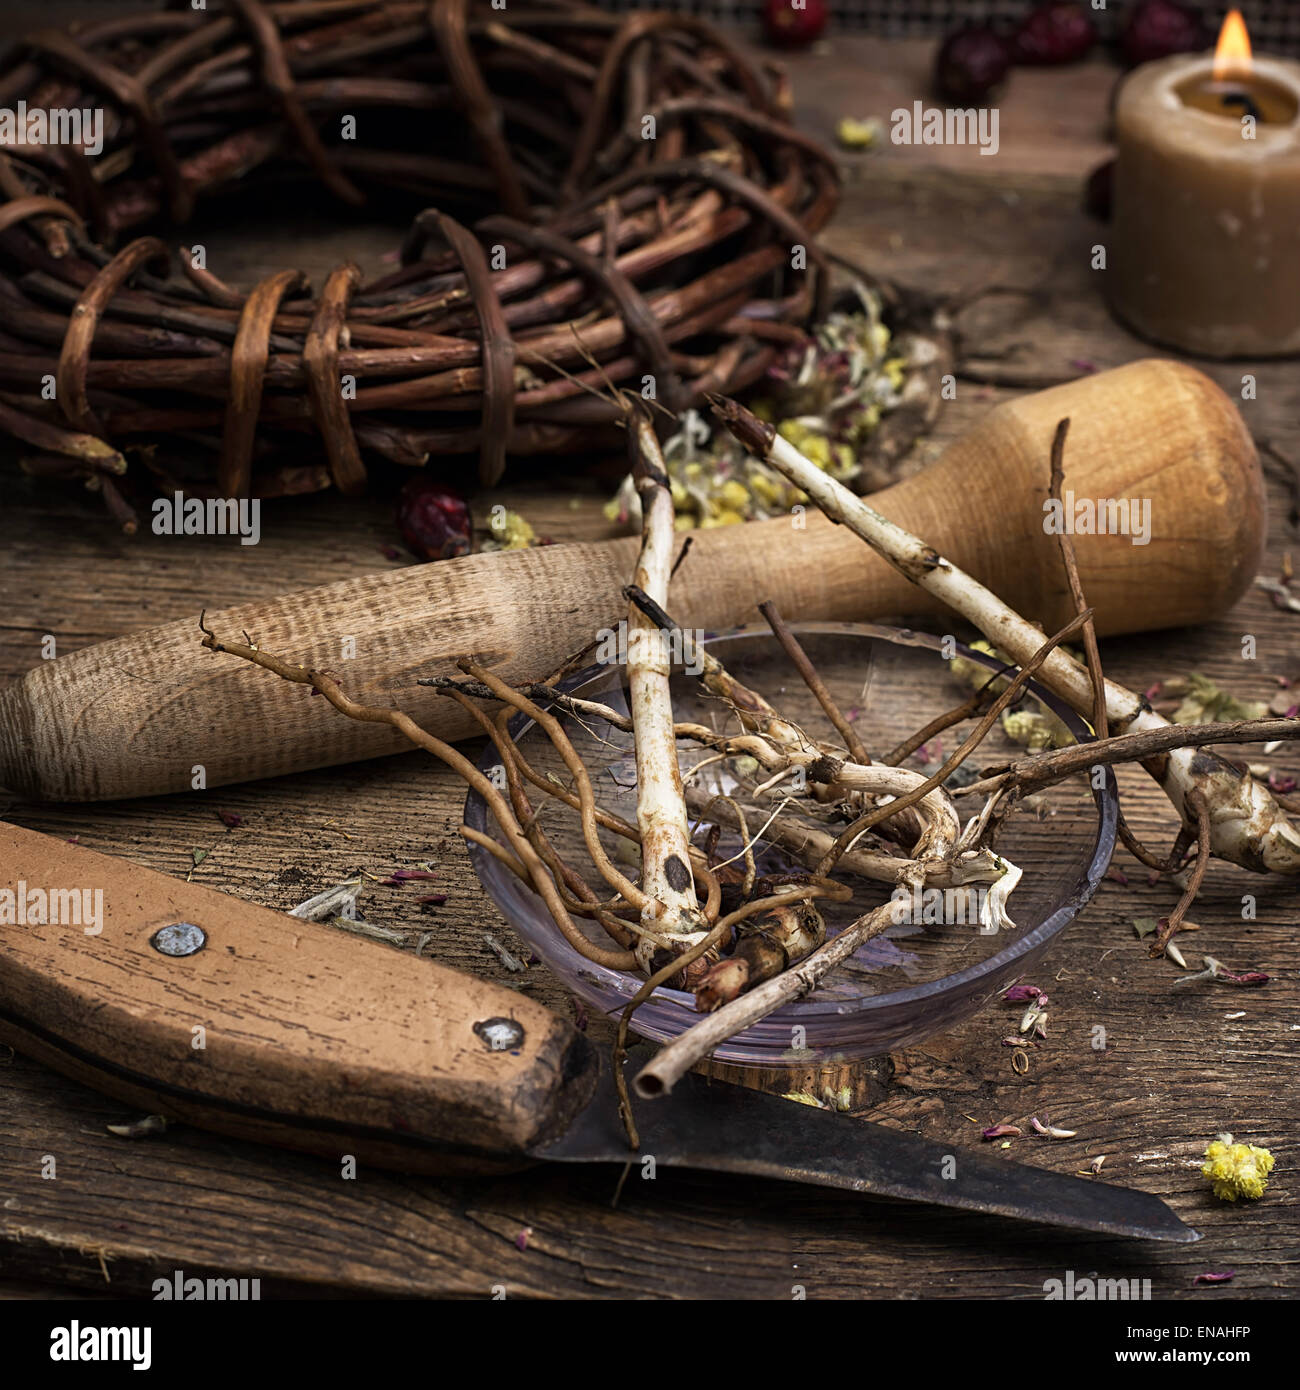 dried medicinal licorice root herbalist.Selective focus - Stock Image